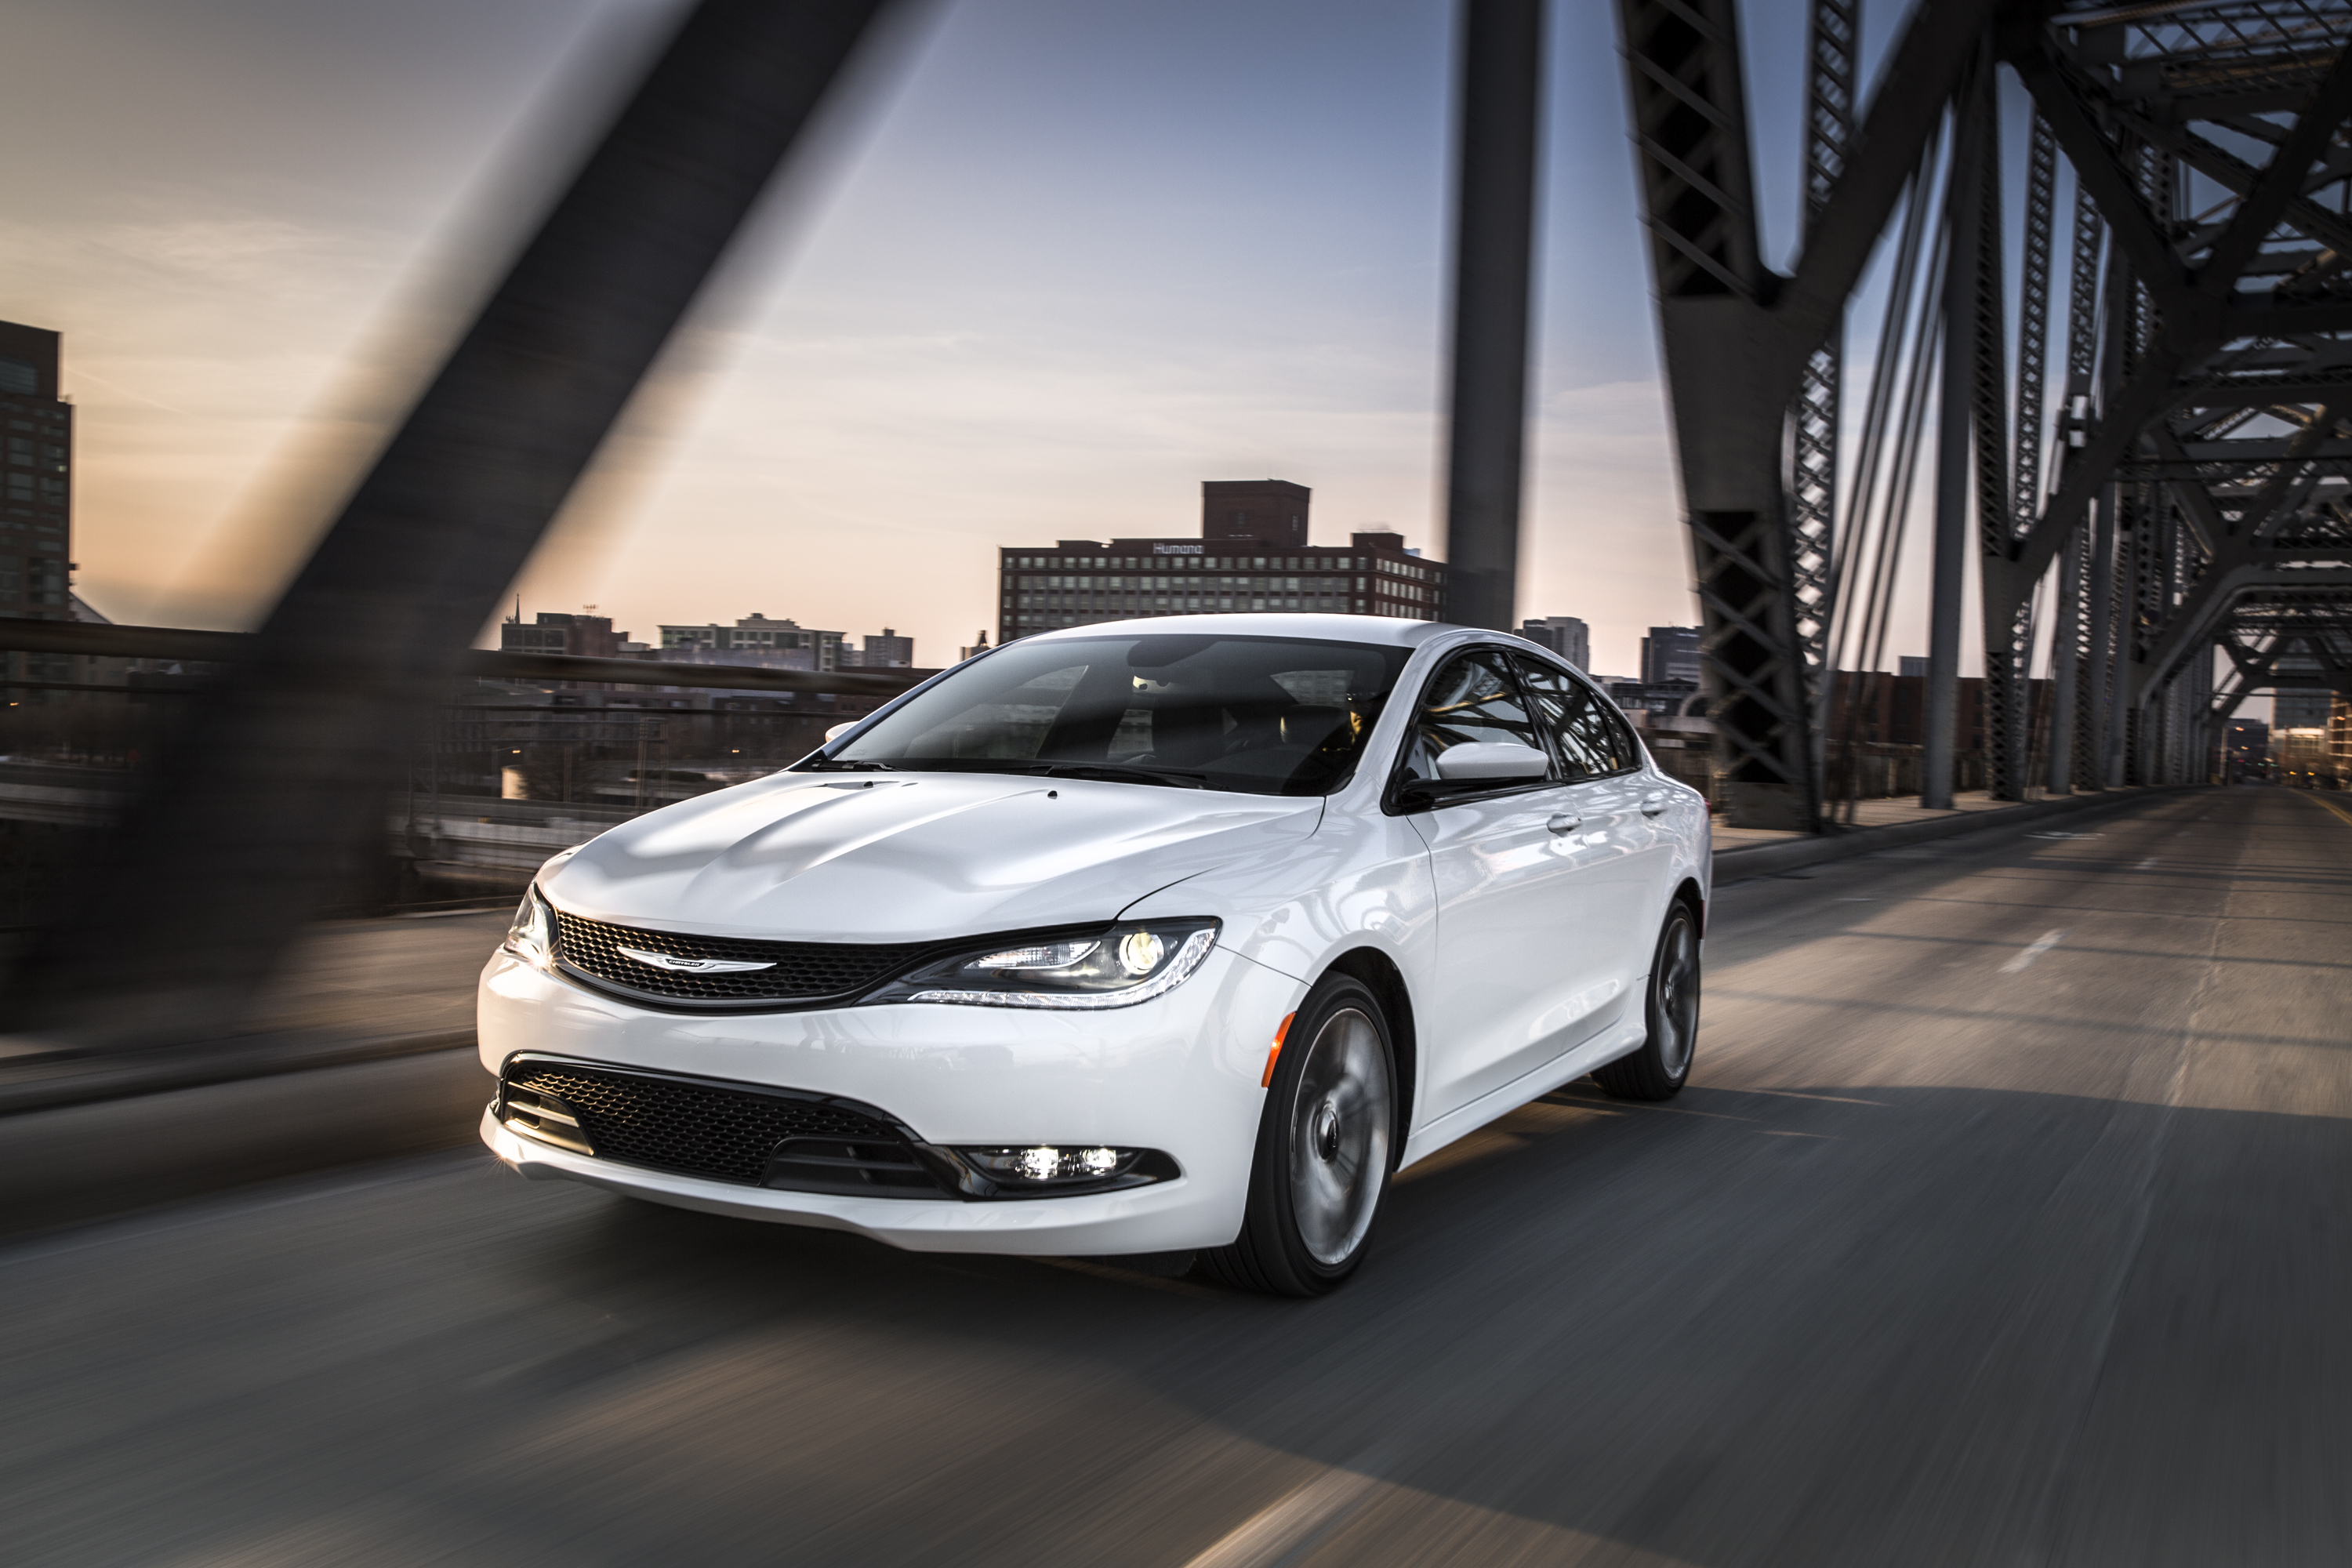 2015 Chrysler 200 Pictures Gallery (11 Images)